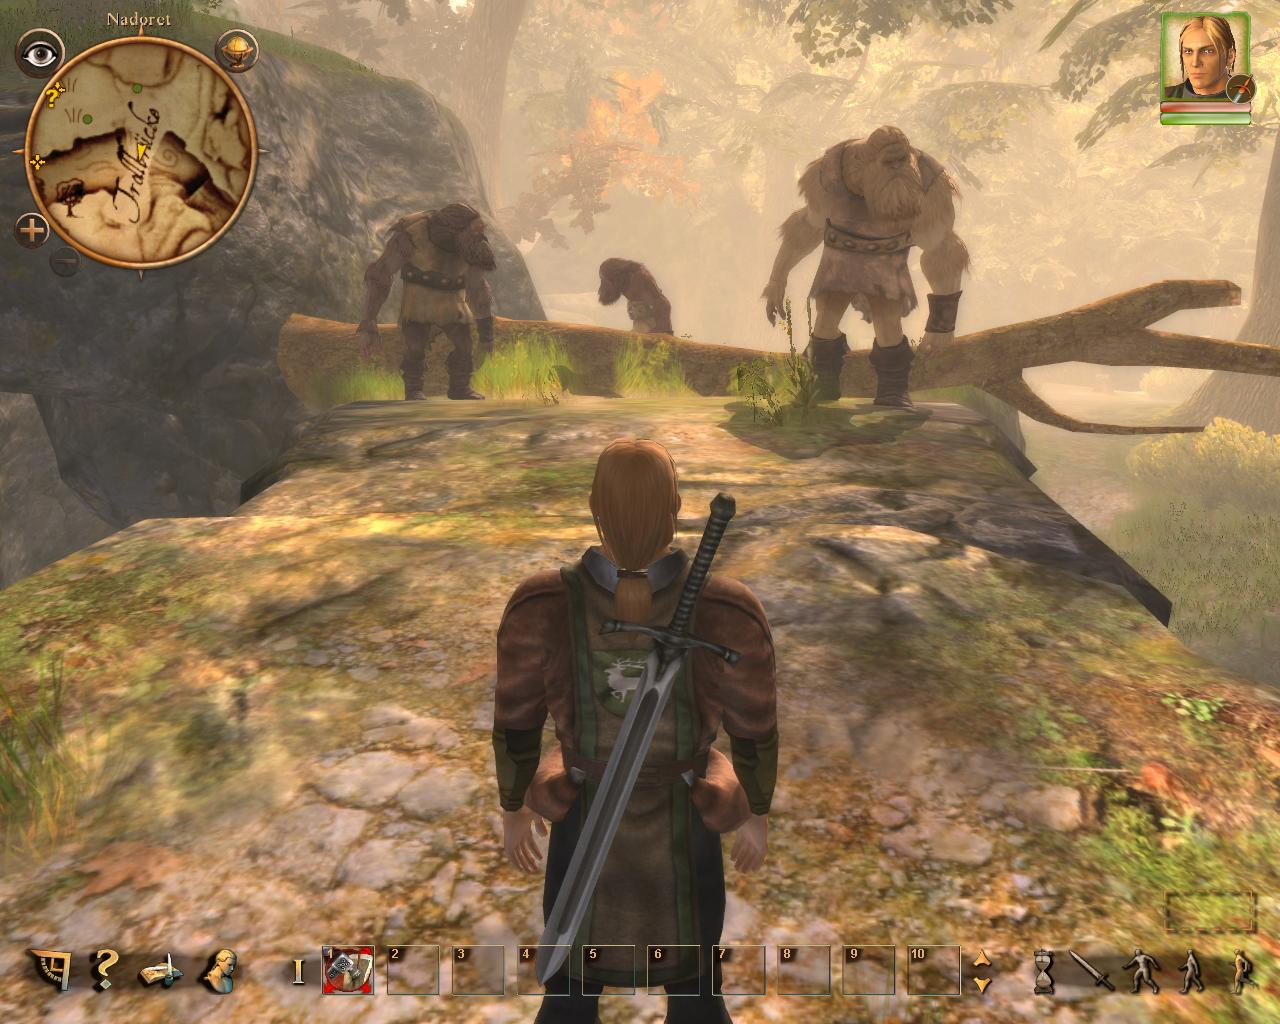 Screens Zimmer 7 angezeig: drakensang the river of time trainer